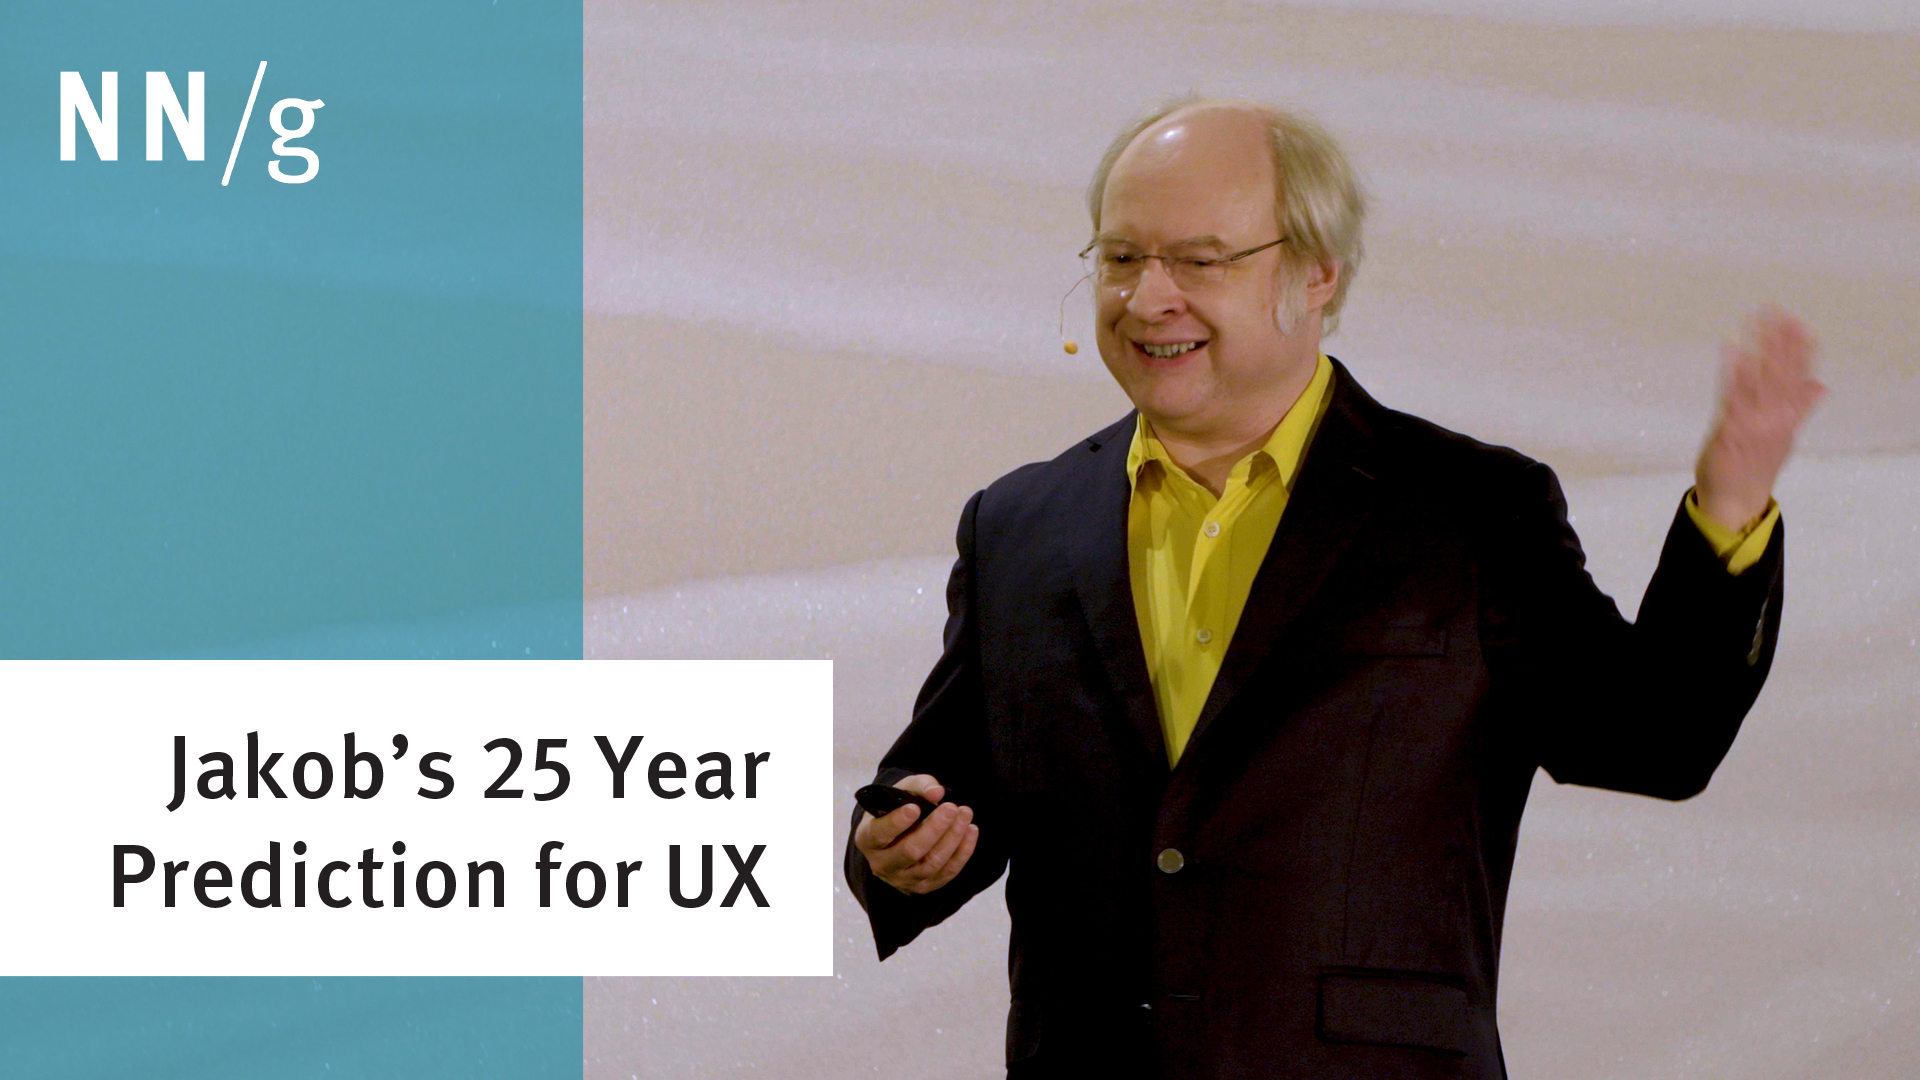 10 UX Challenges for the Next 25 Years (Jakob Nielsen Keynote) (Video)